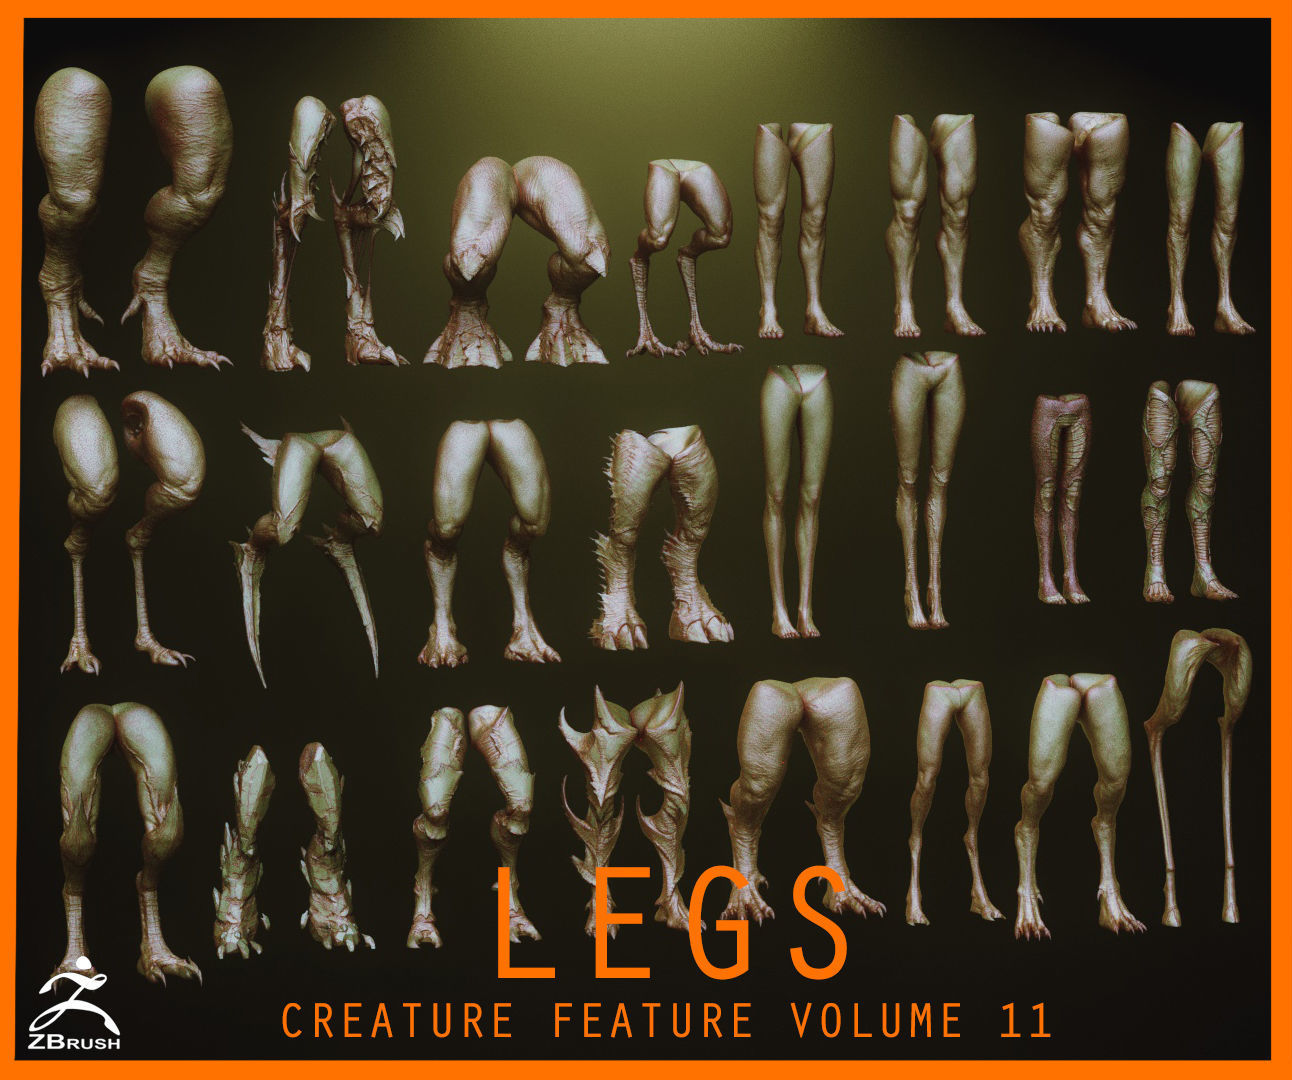 LEGS - 33 Character and Creature Insert meshes